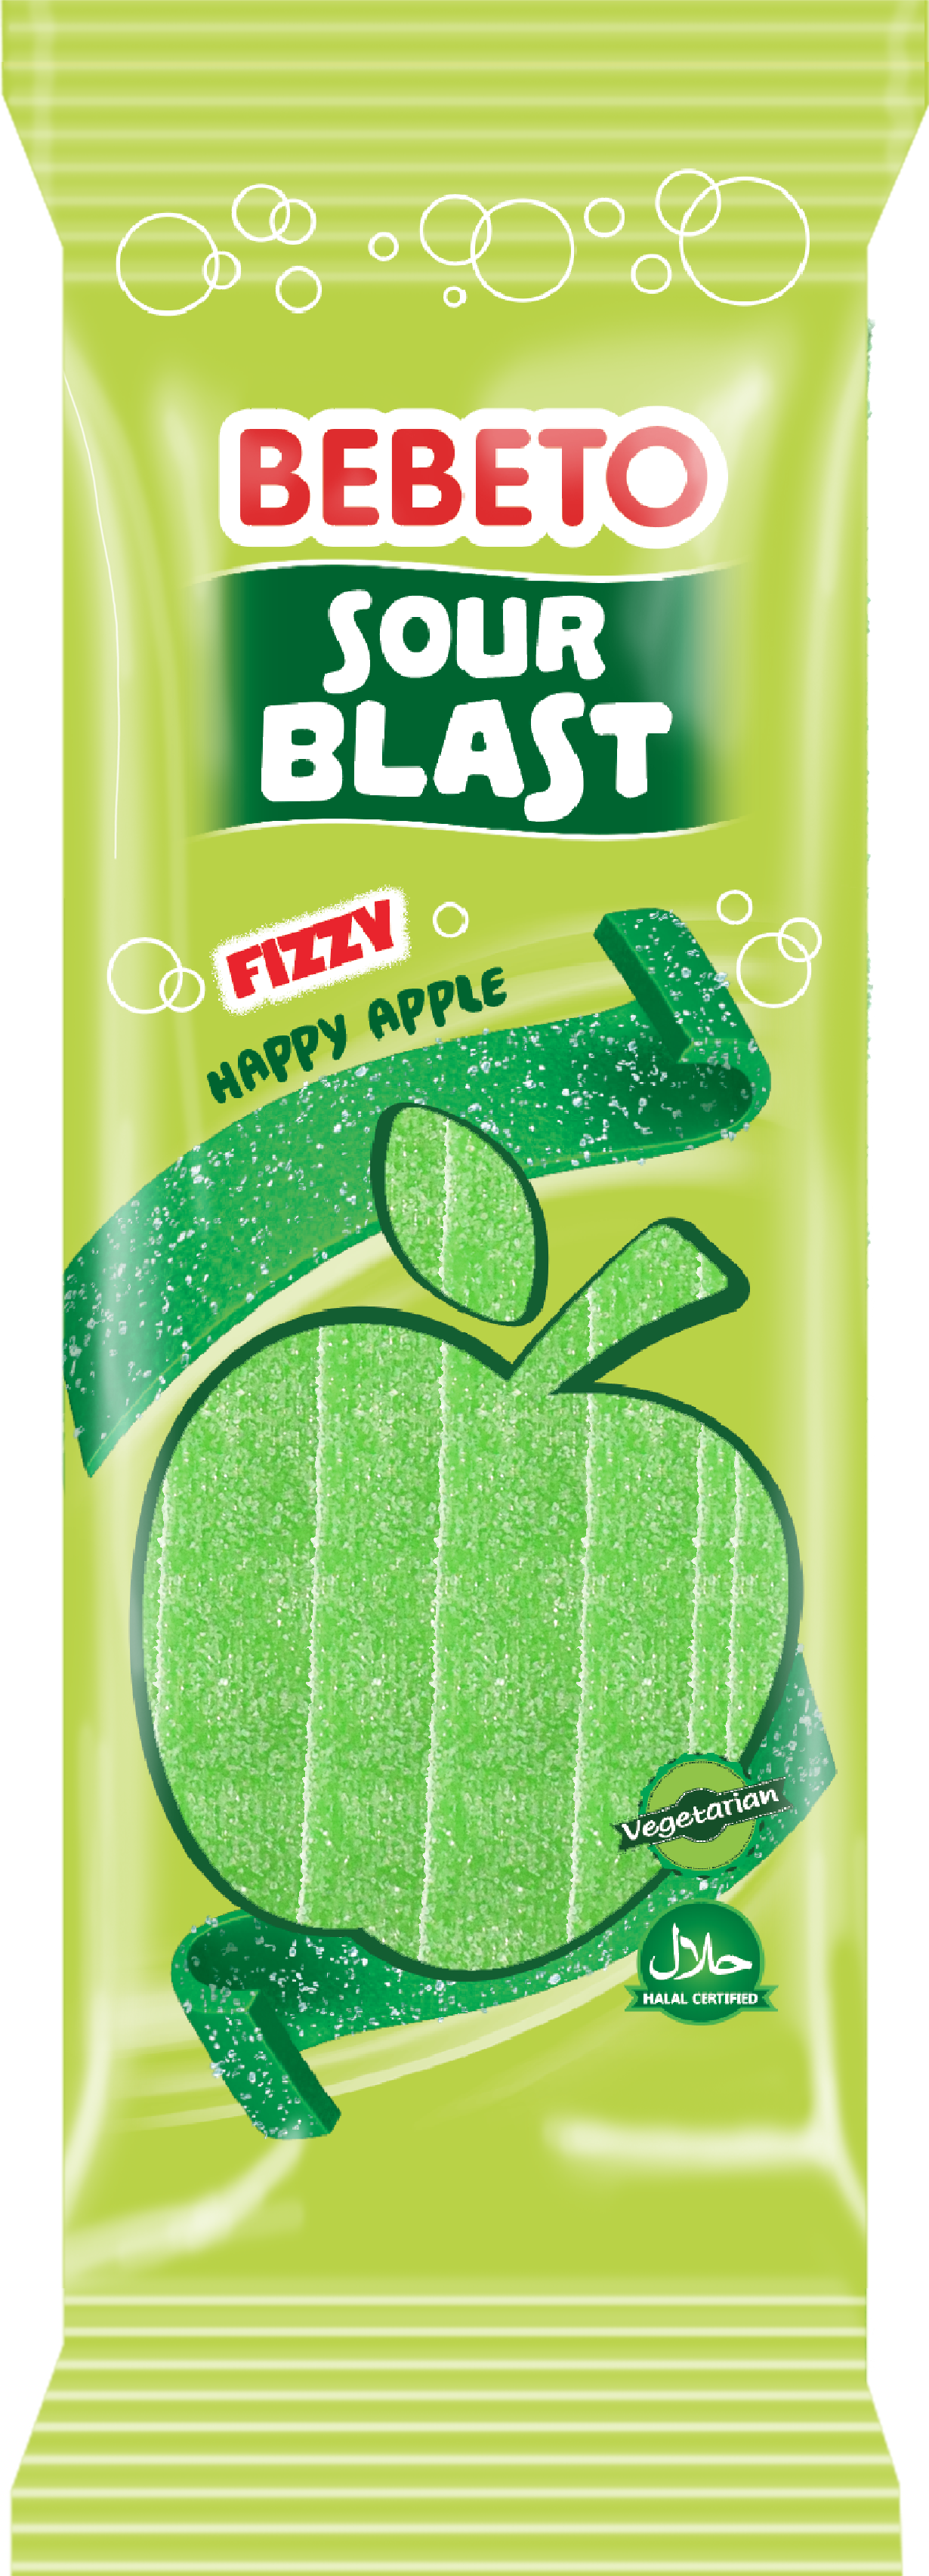 Sour Blast Fizy Apple